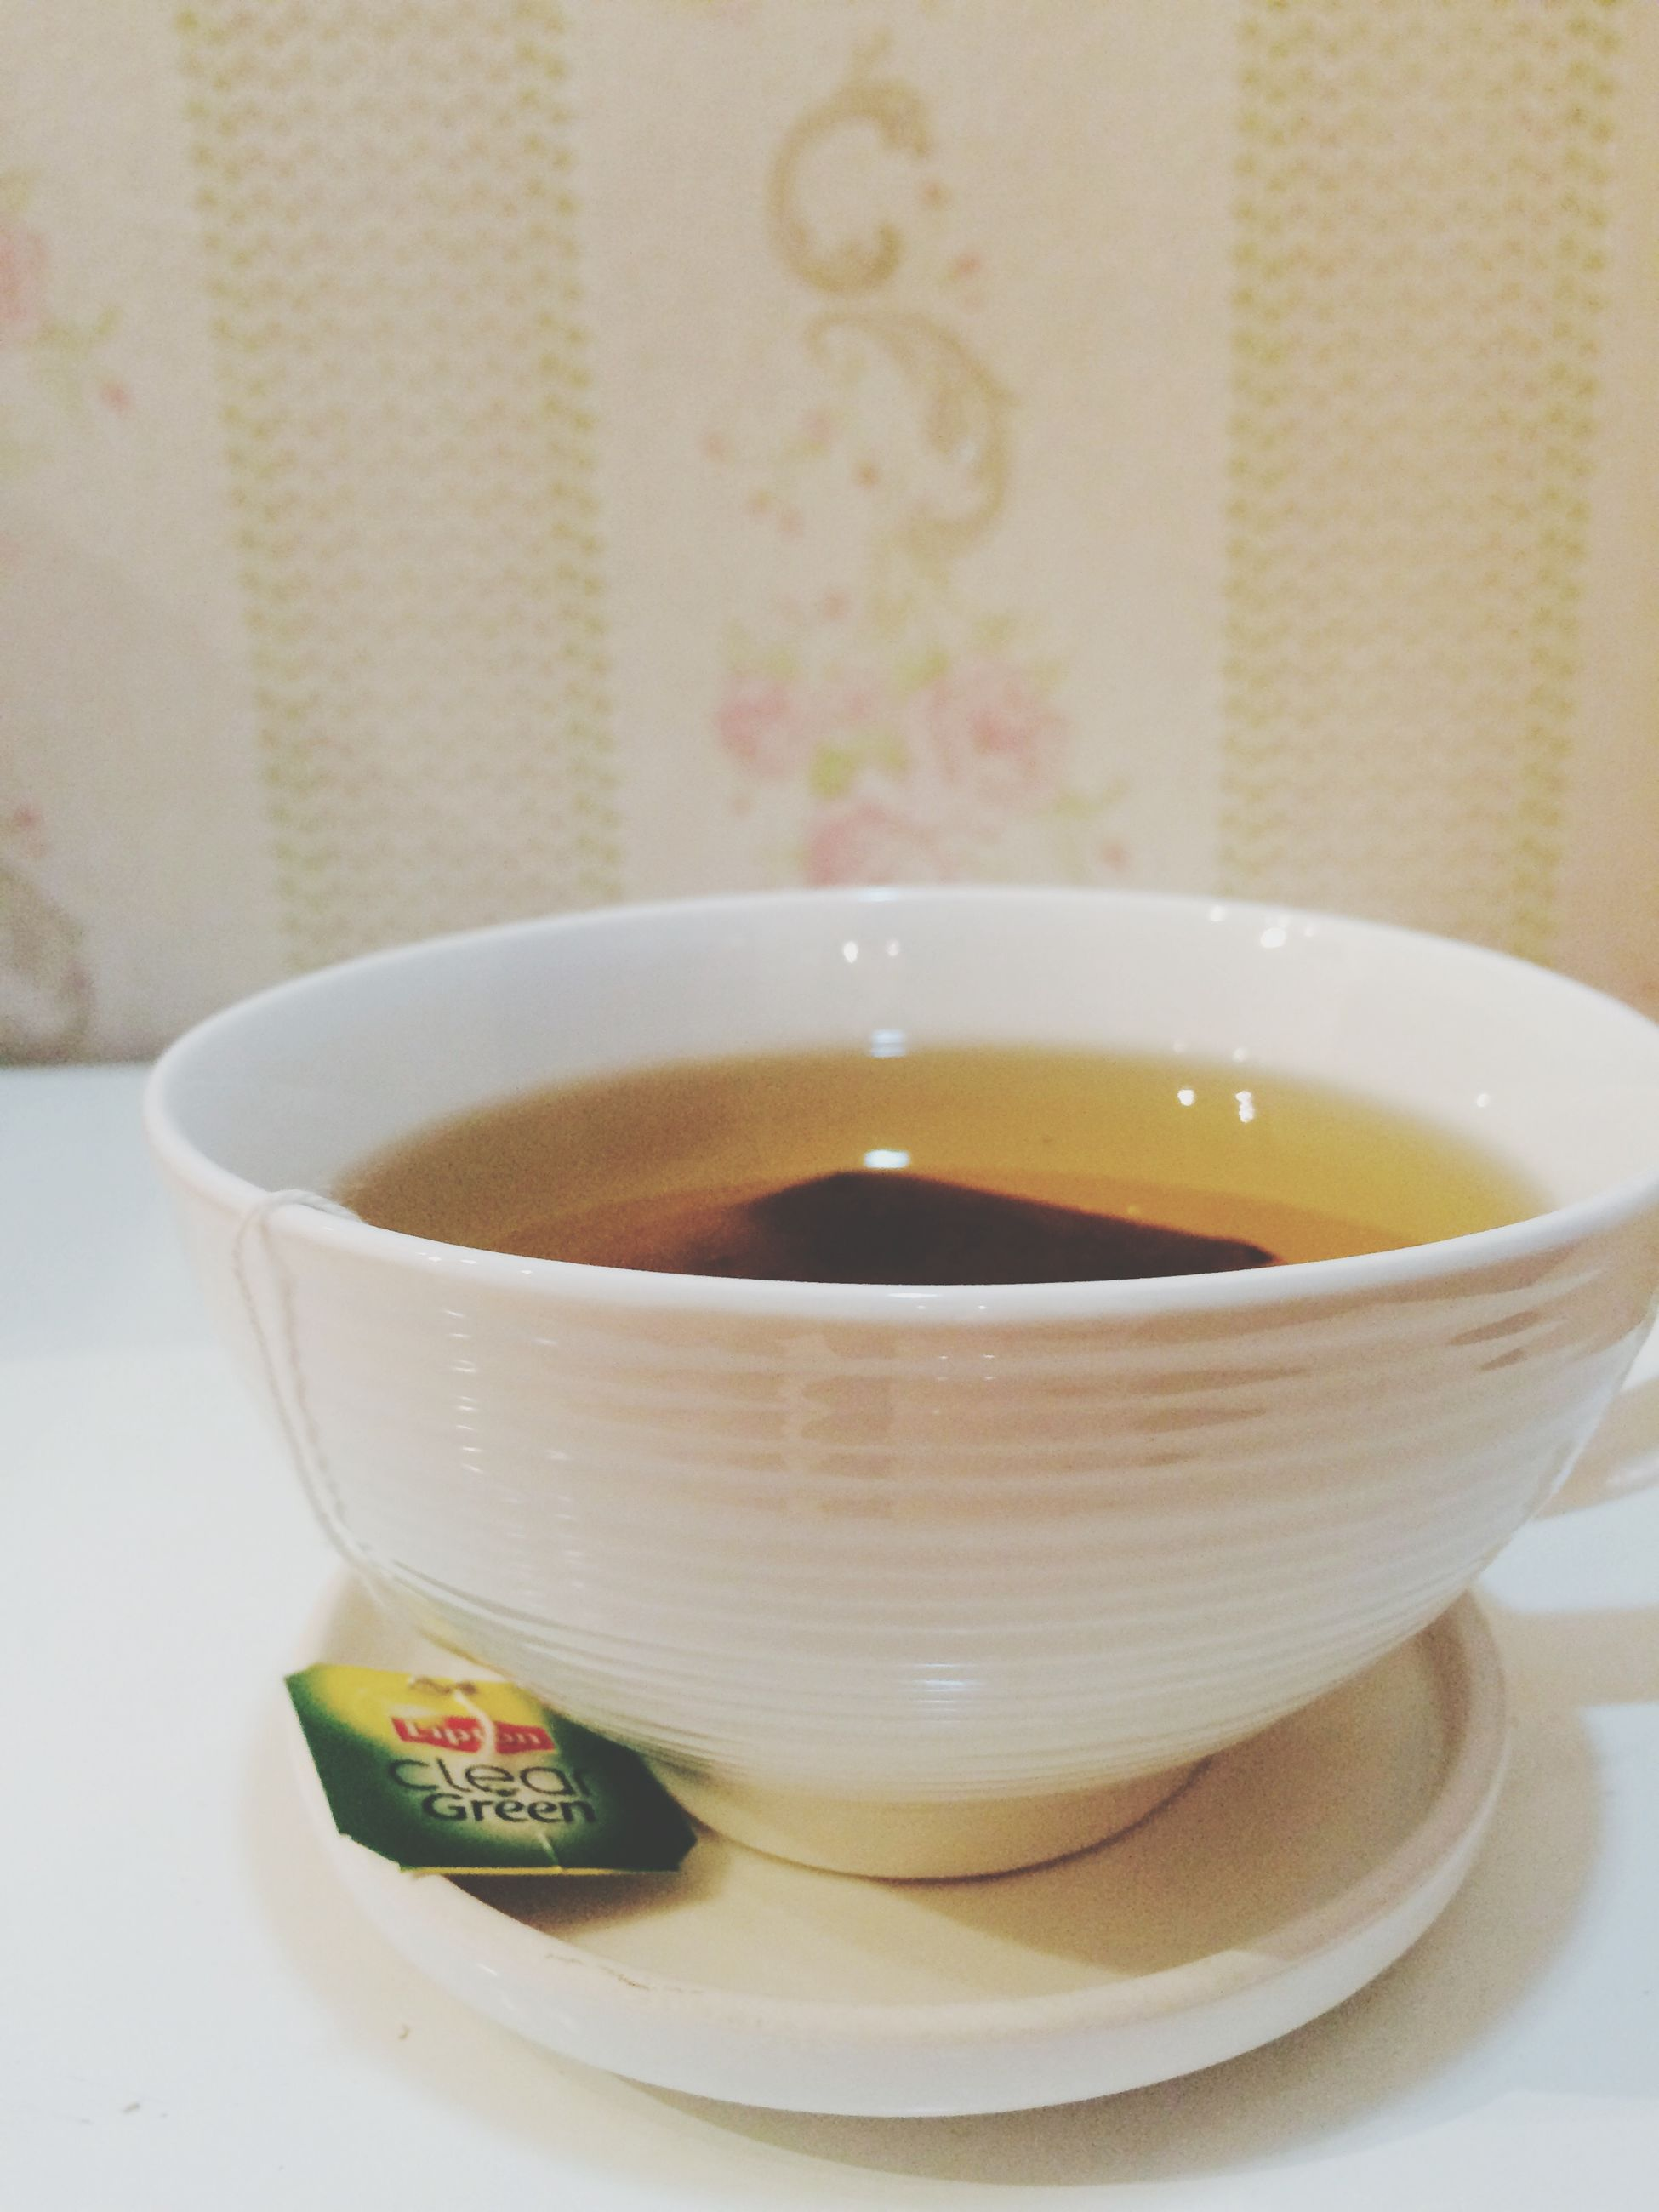 indoors, food and drink, drink, refreshment, still life, coffee cup, table, freshness, close-up, coffee - drink, cup, coffee, healthy eating, food, high angle view, no people, saucer, tea cup, plate, breakfast